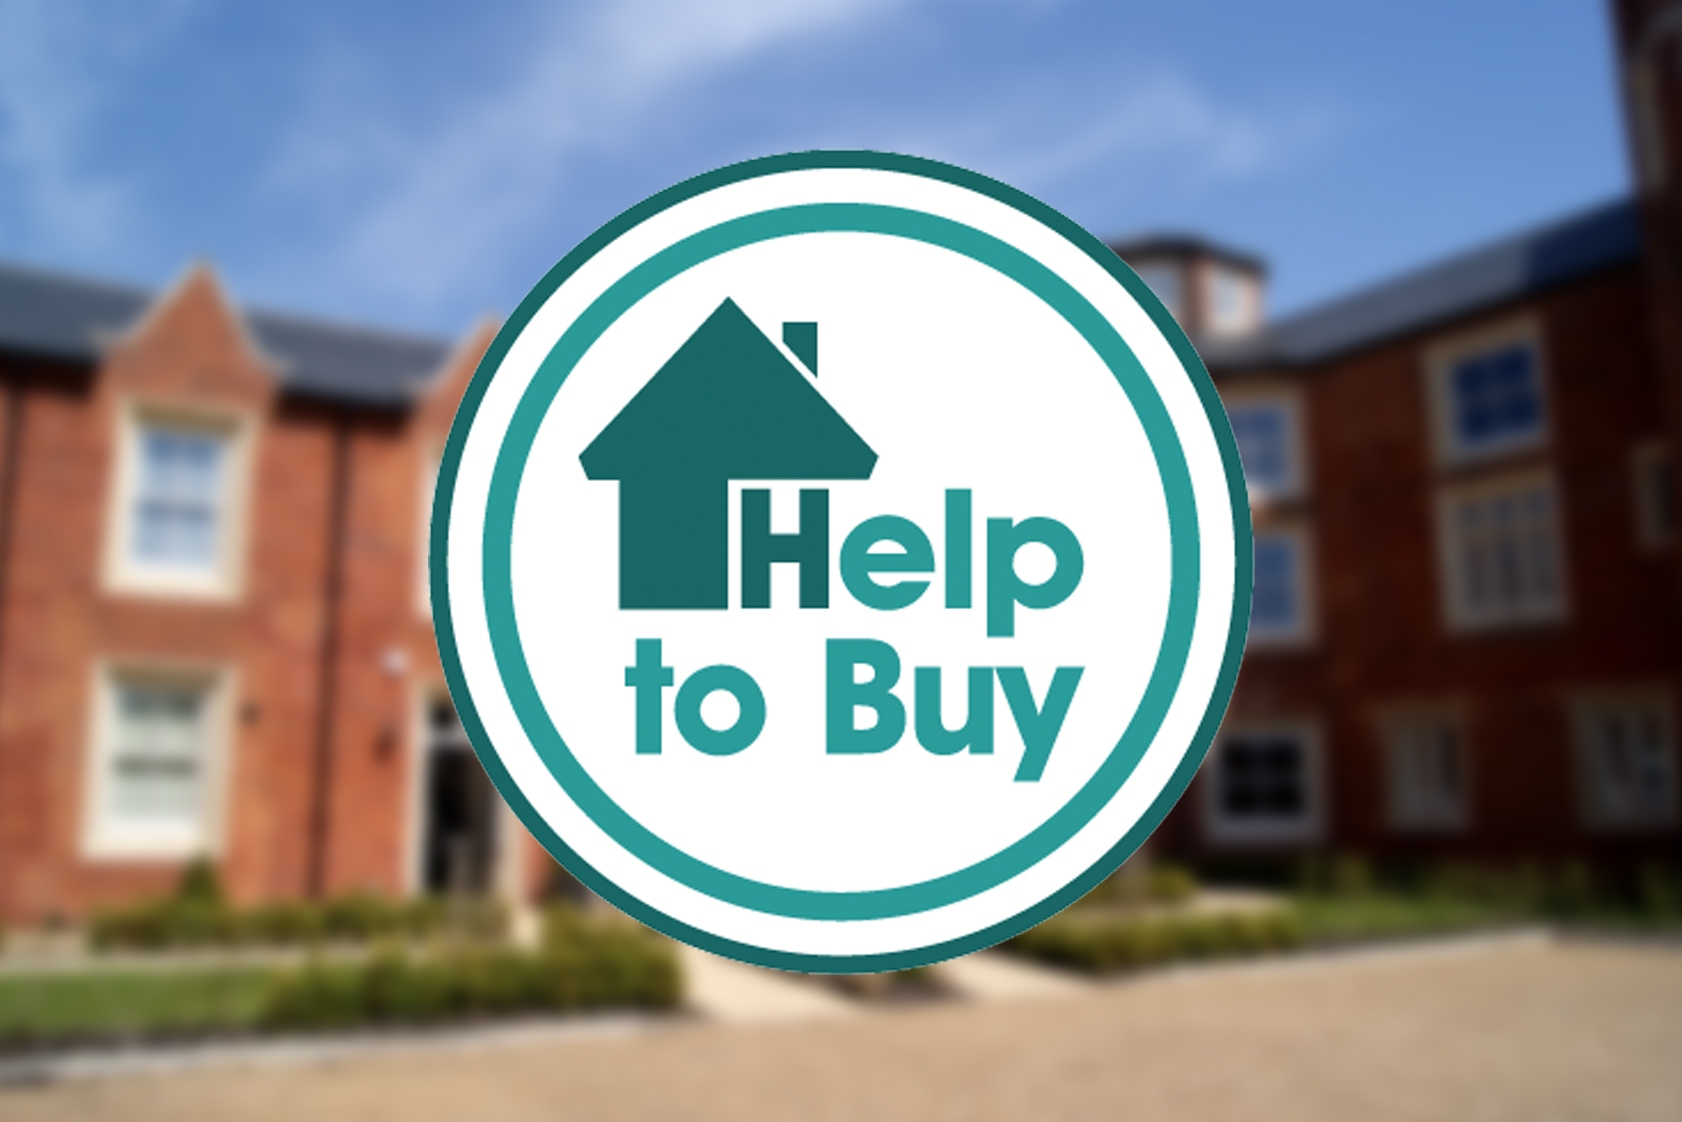 The Help to Buy logo